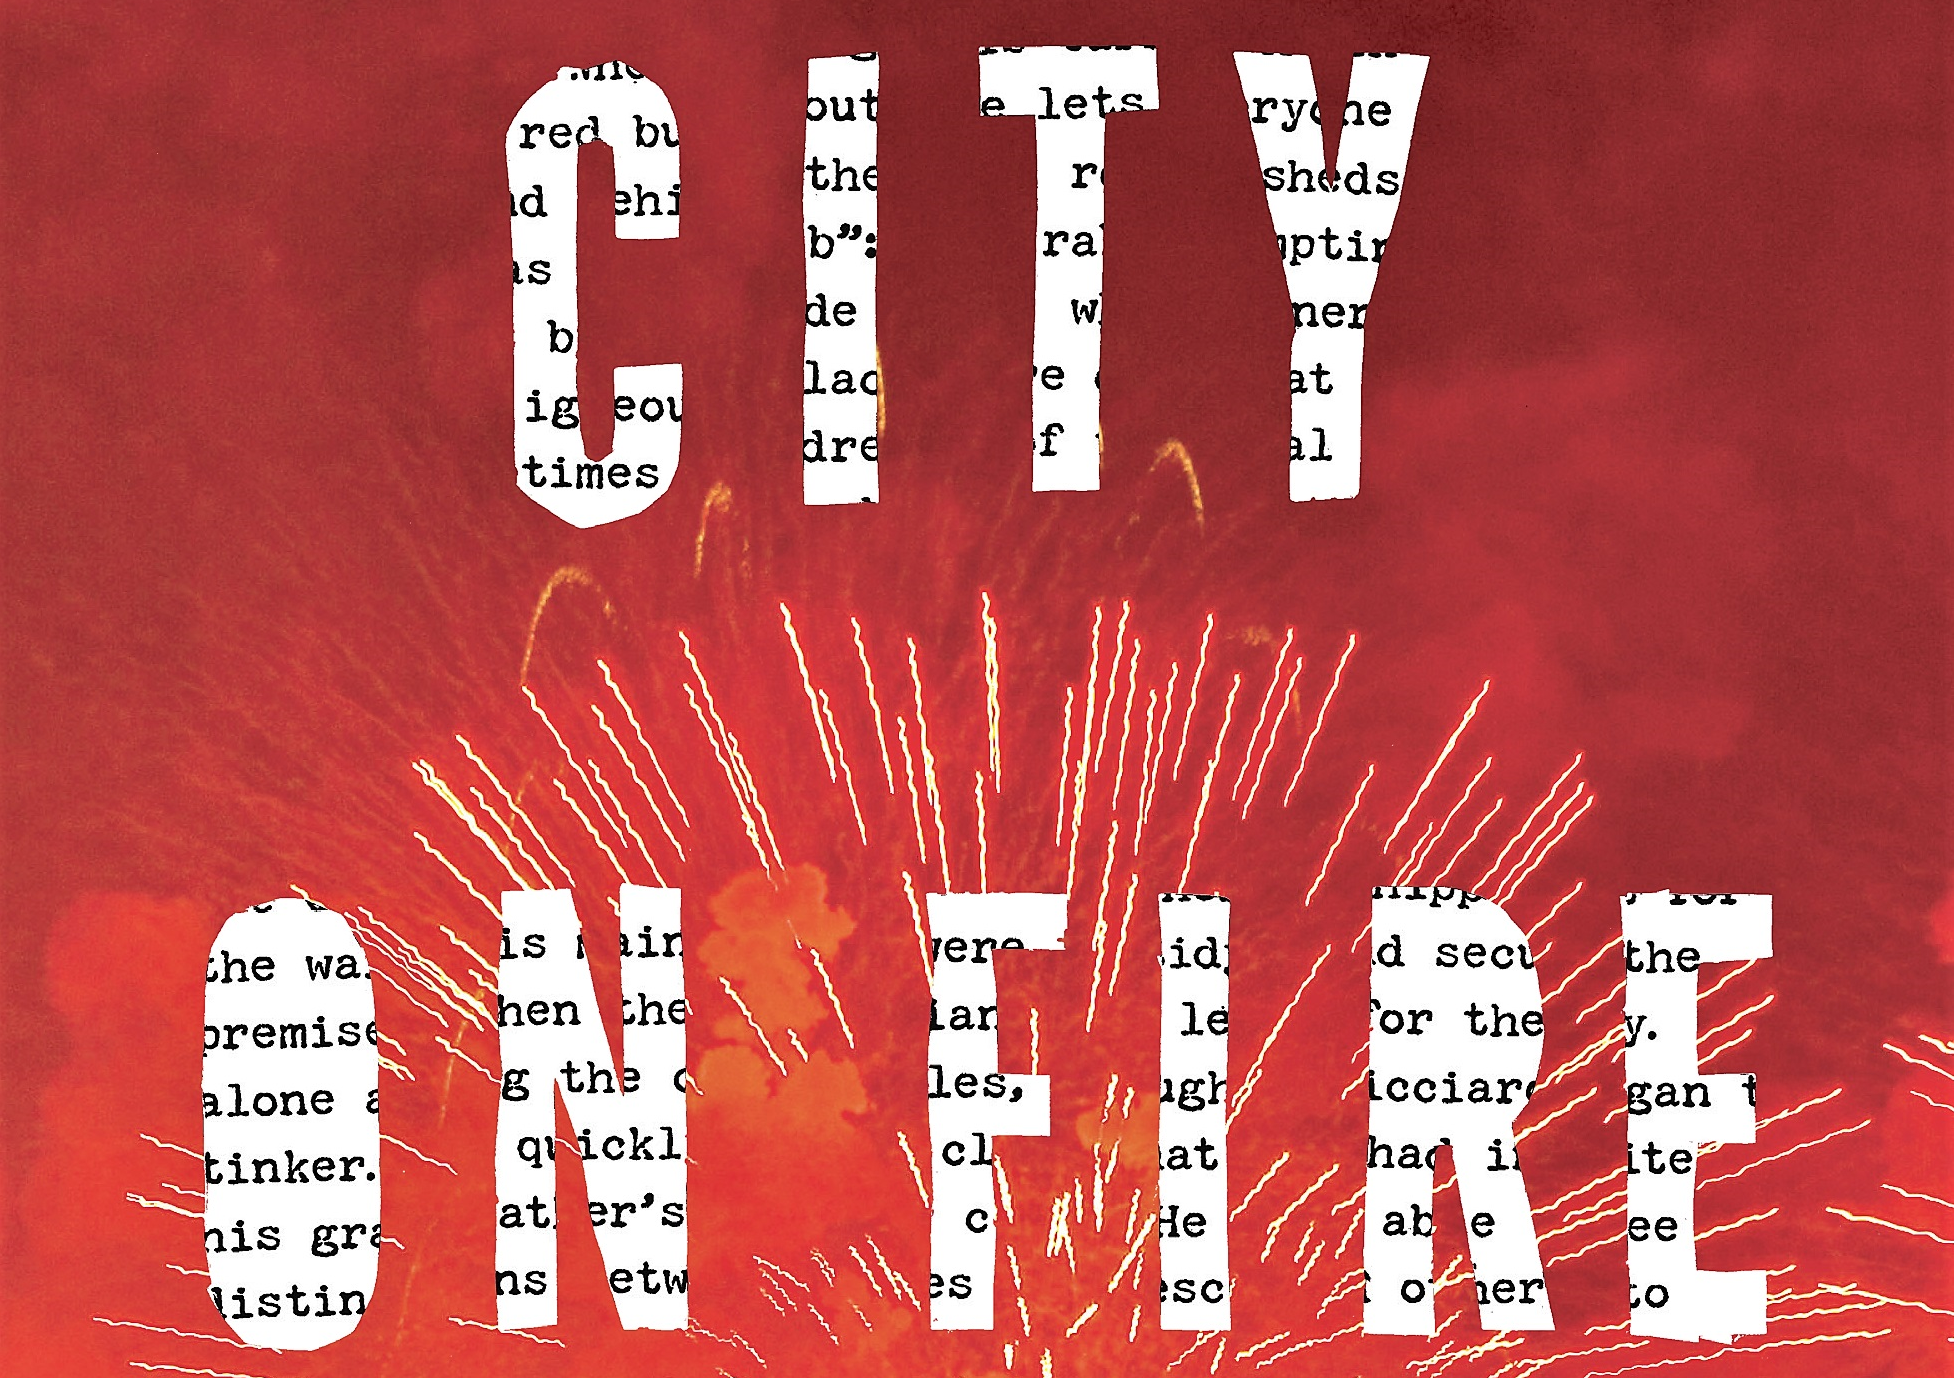 Review: 'City on Fire' by Garth Risk Hallberg